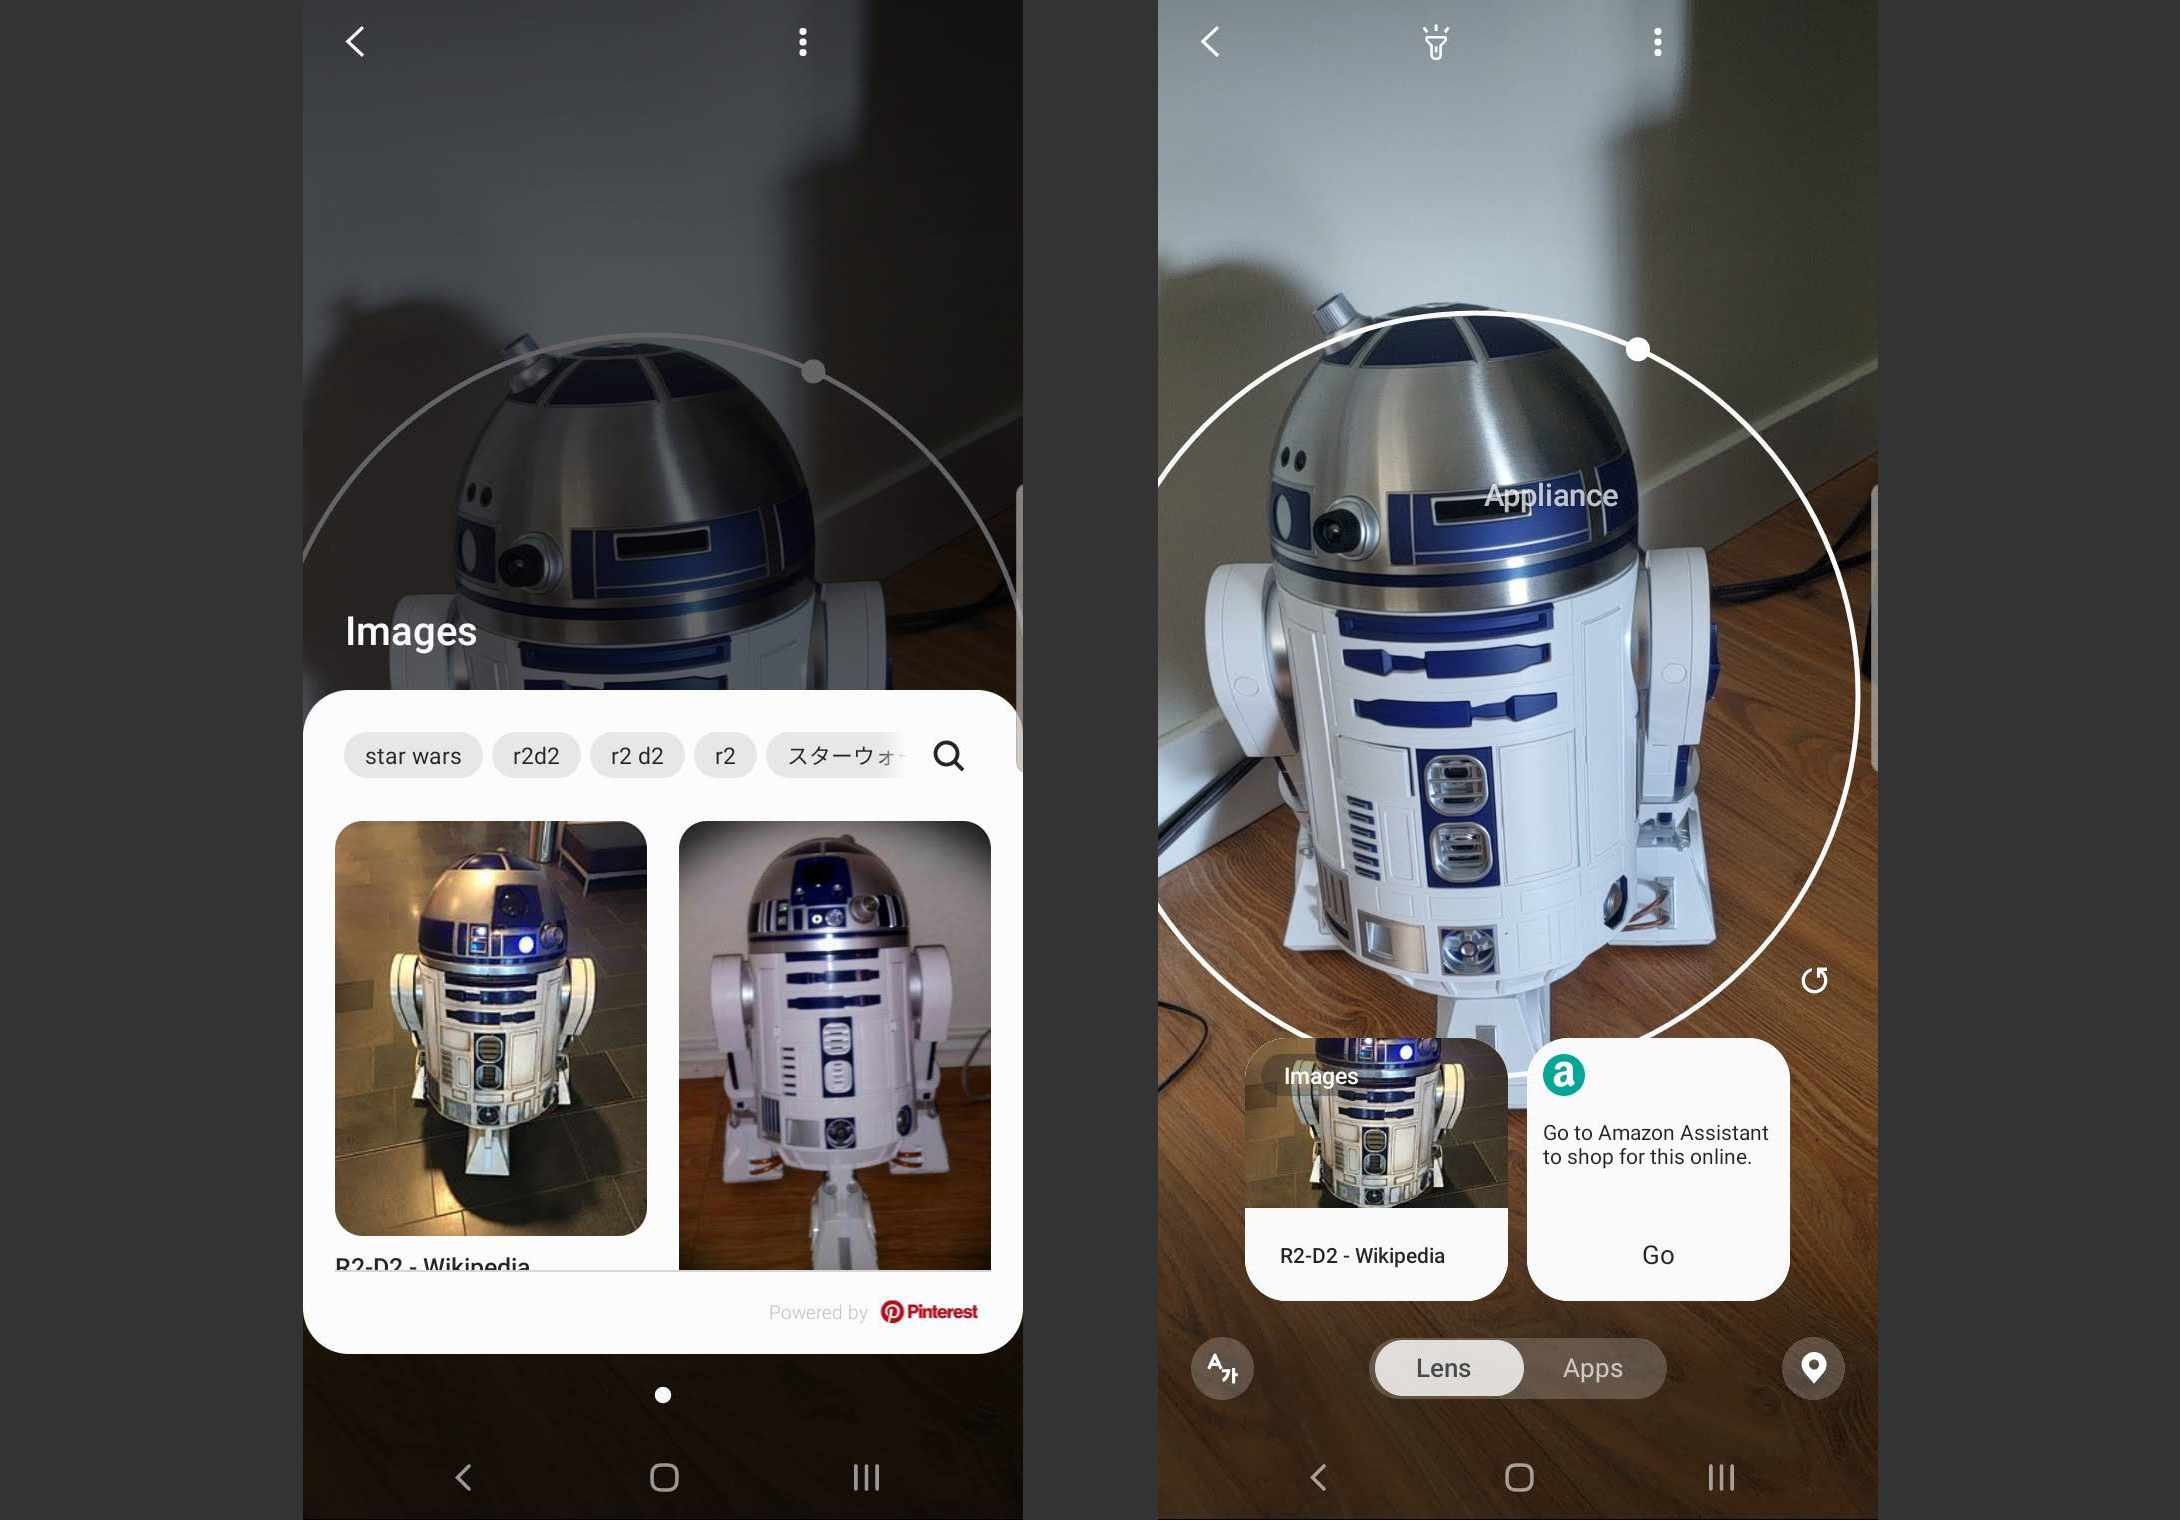 Images and Bixby Vision